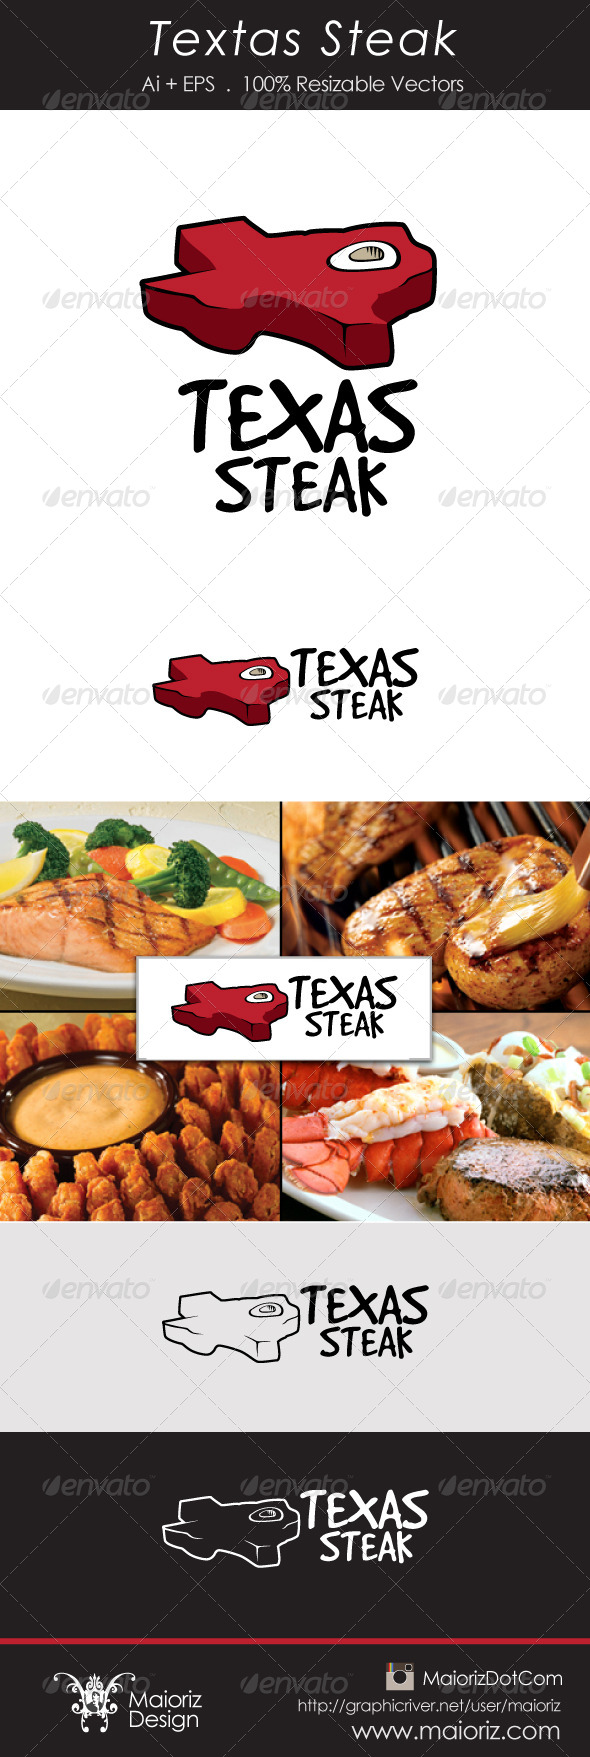 GraphicRiver Texas Steak Logotype 6103777